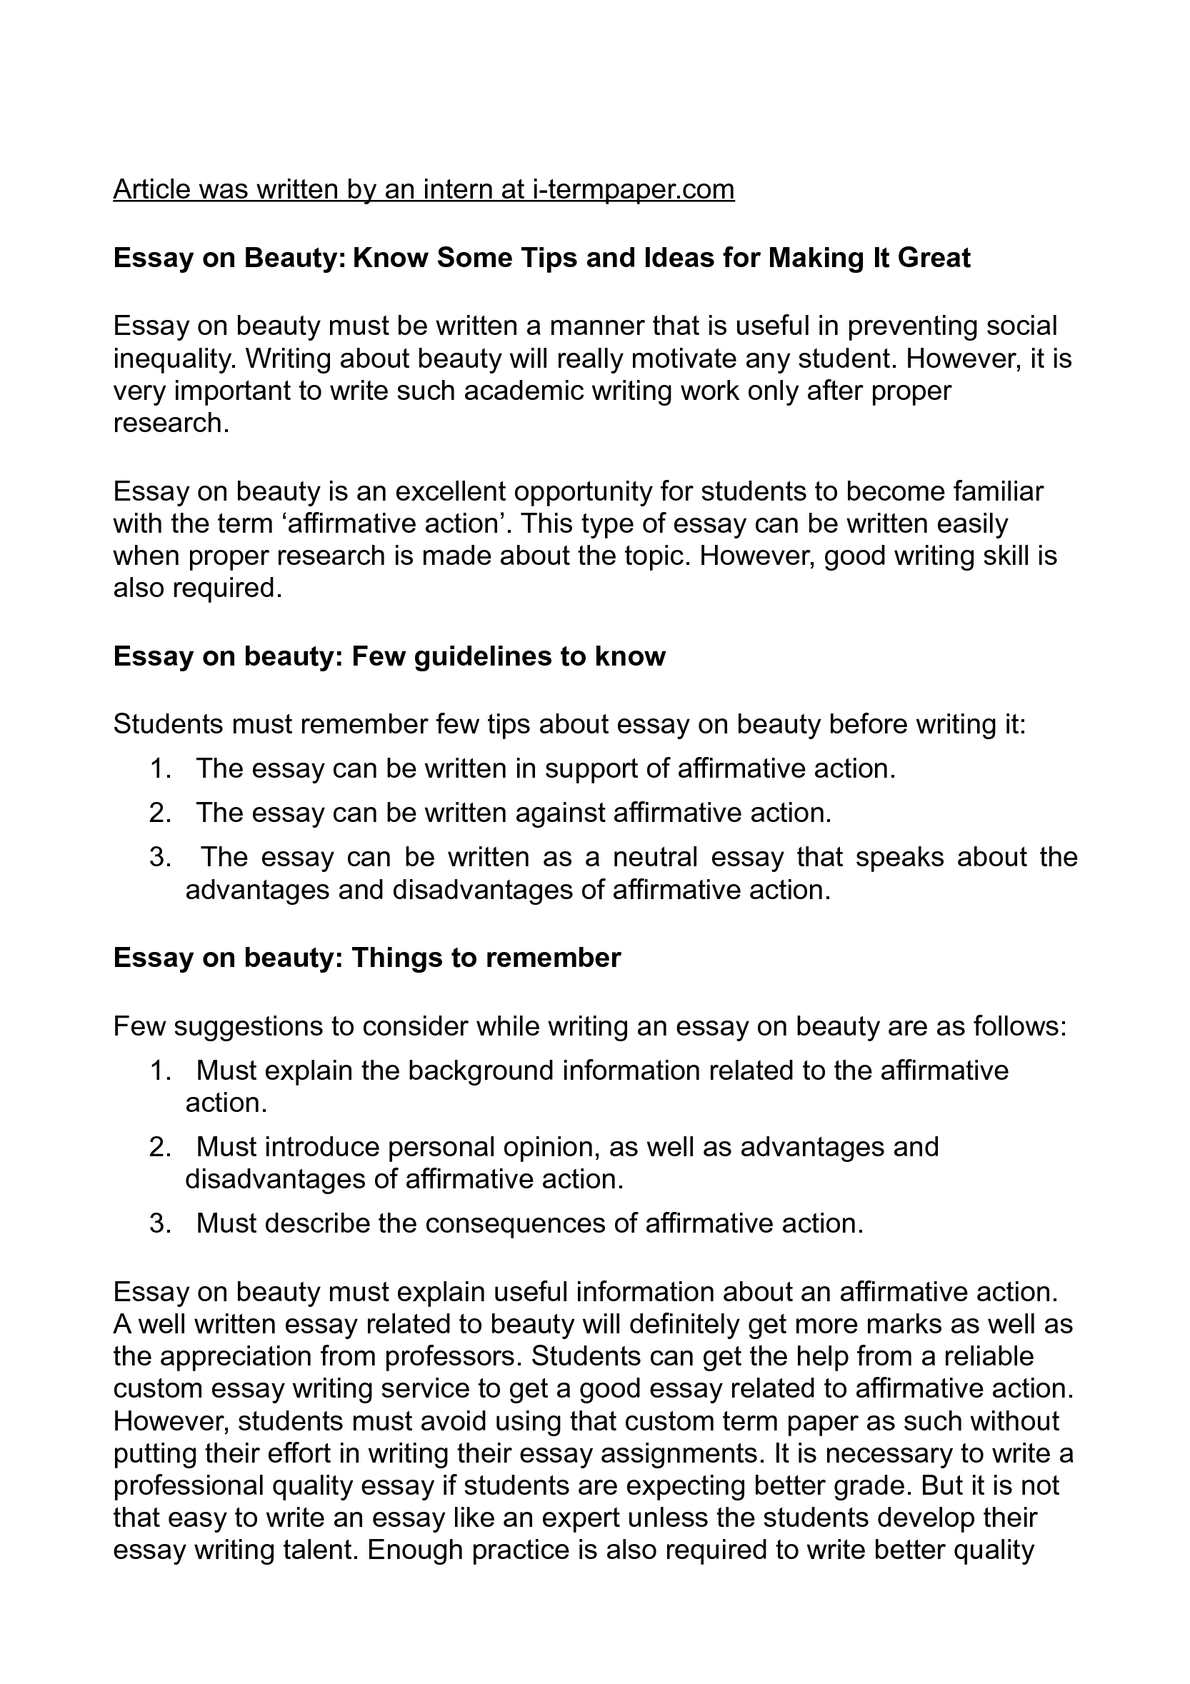 How To Write A Proposal For An Essay  Genetically Modified Food Essay Thesis also Healthy Eating Habits Essay Calamo  Essay On Beauty Know Some Tips And Ideas For Making It Great Research Paper Vs Essay